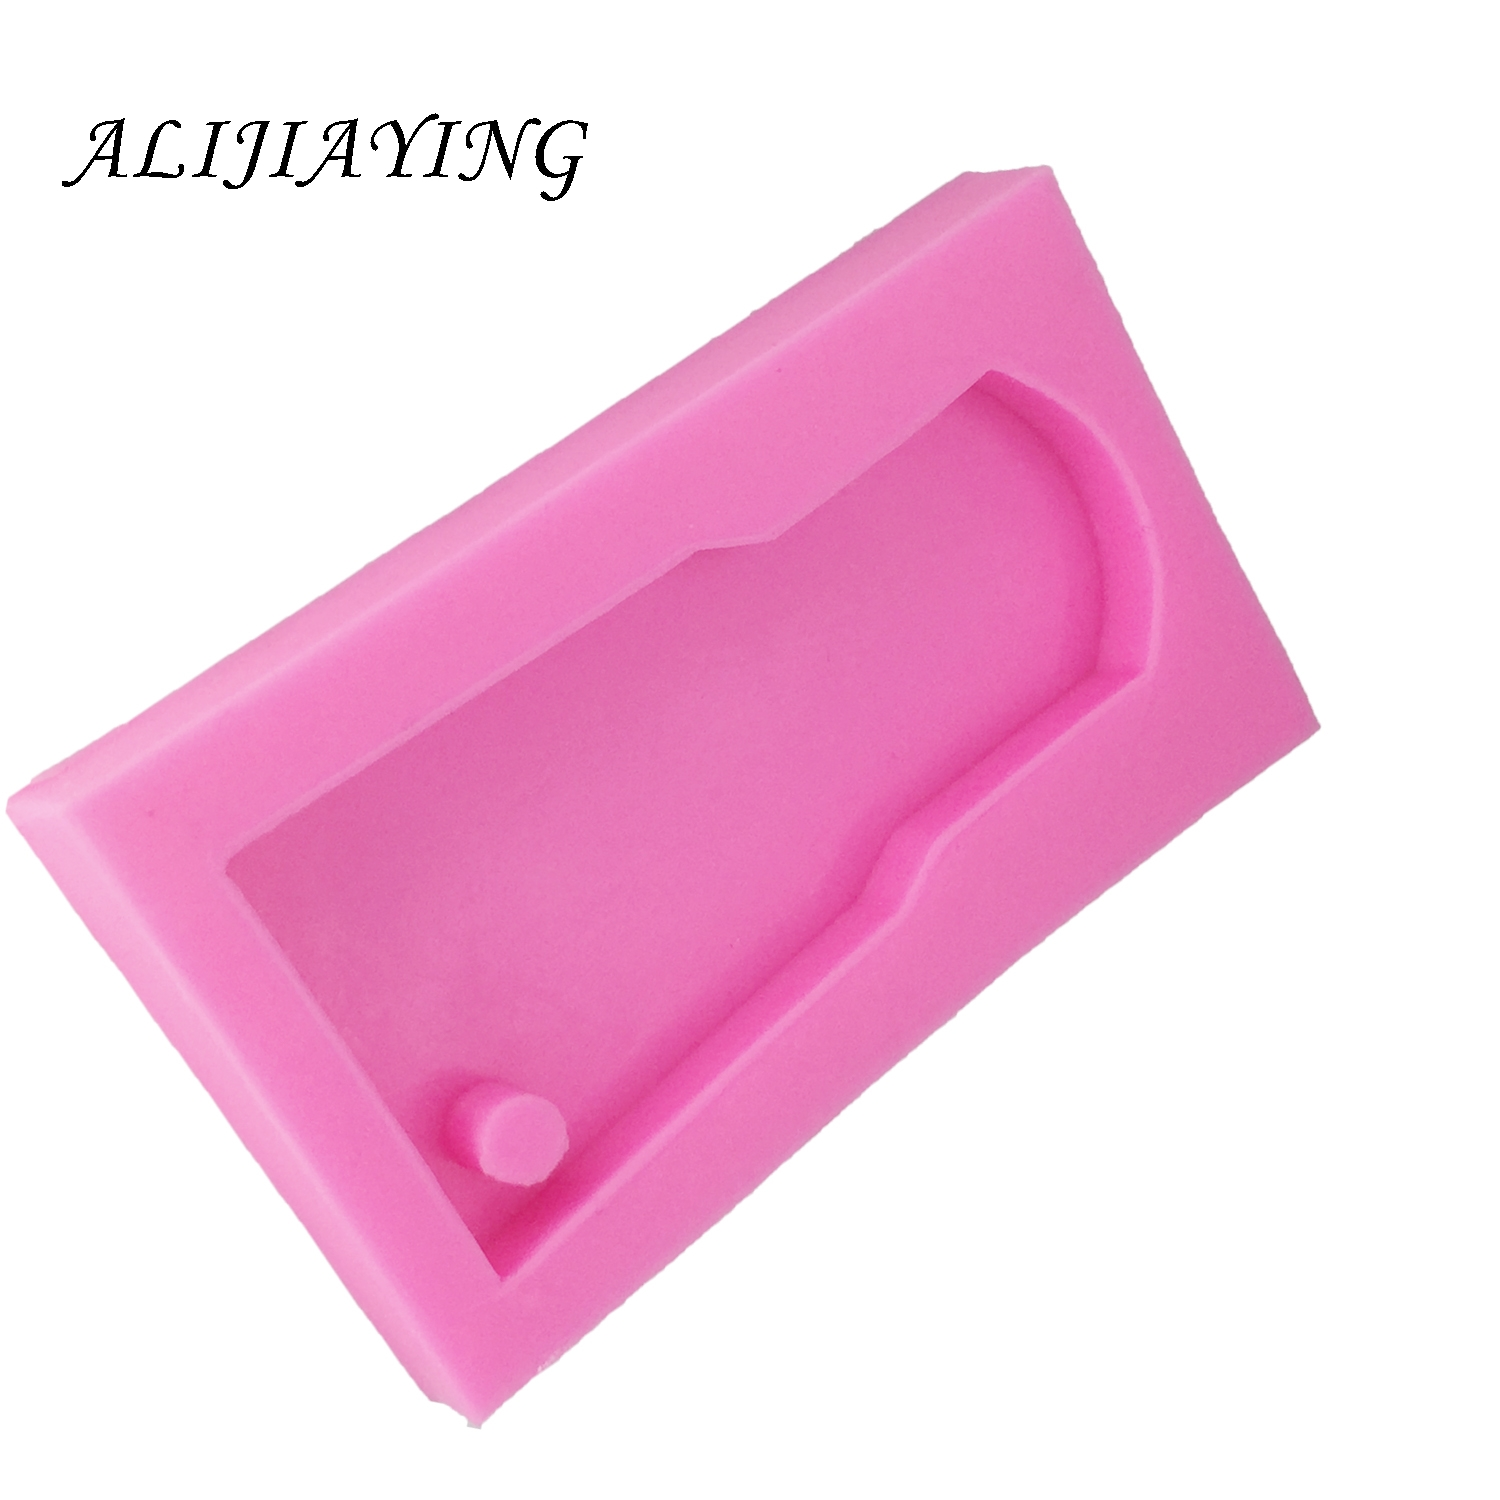 Unicorn Silicone Keychain Mold Perforated Resin Clay Mold Crafts Tools Moulds for Plaster Silicone Keyring Epoxy Mold